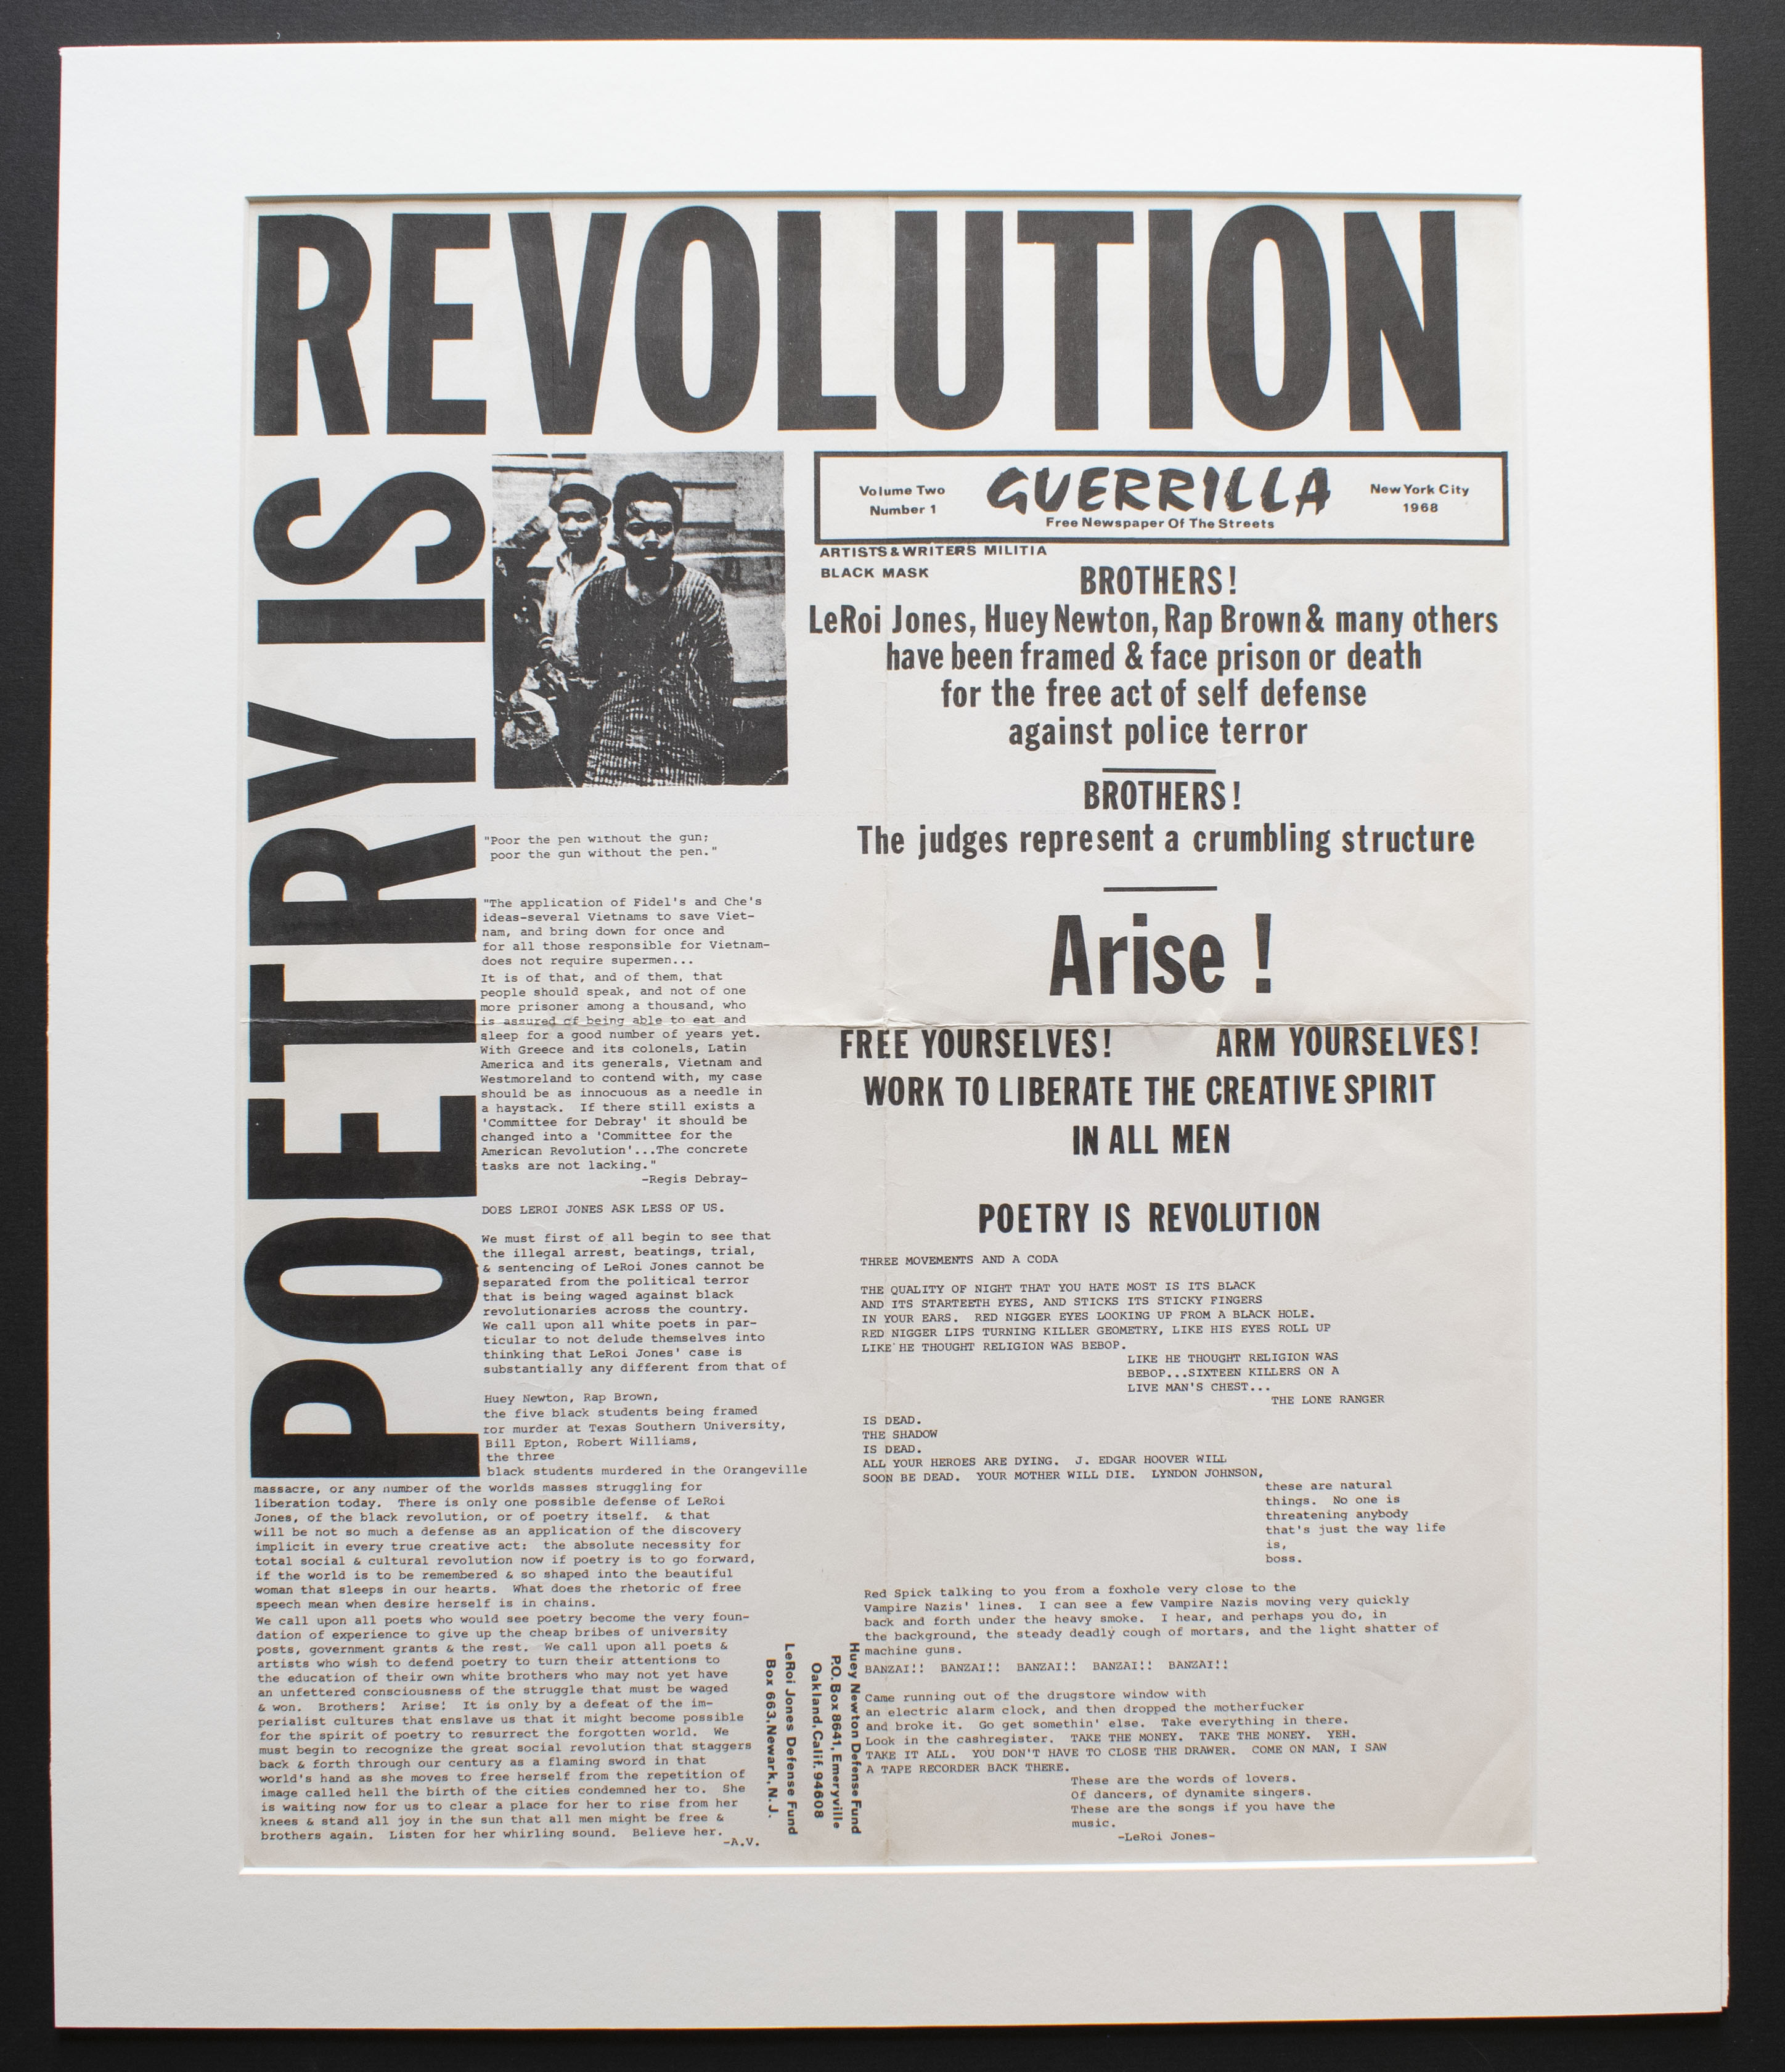 Poetry is Revolution, Guerrilla: Free Newspaper of the Streets, vol. 2, no. 1, 1968